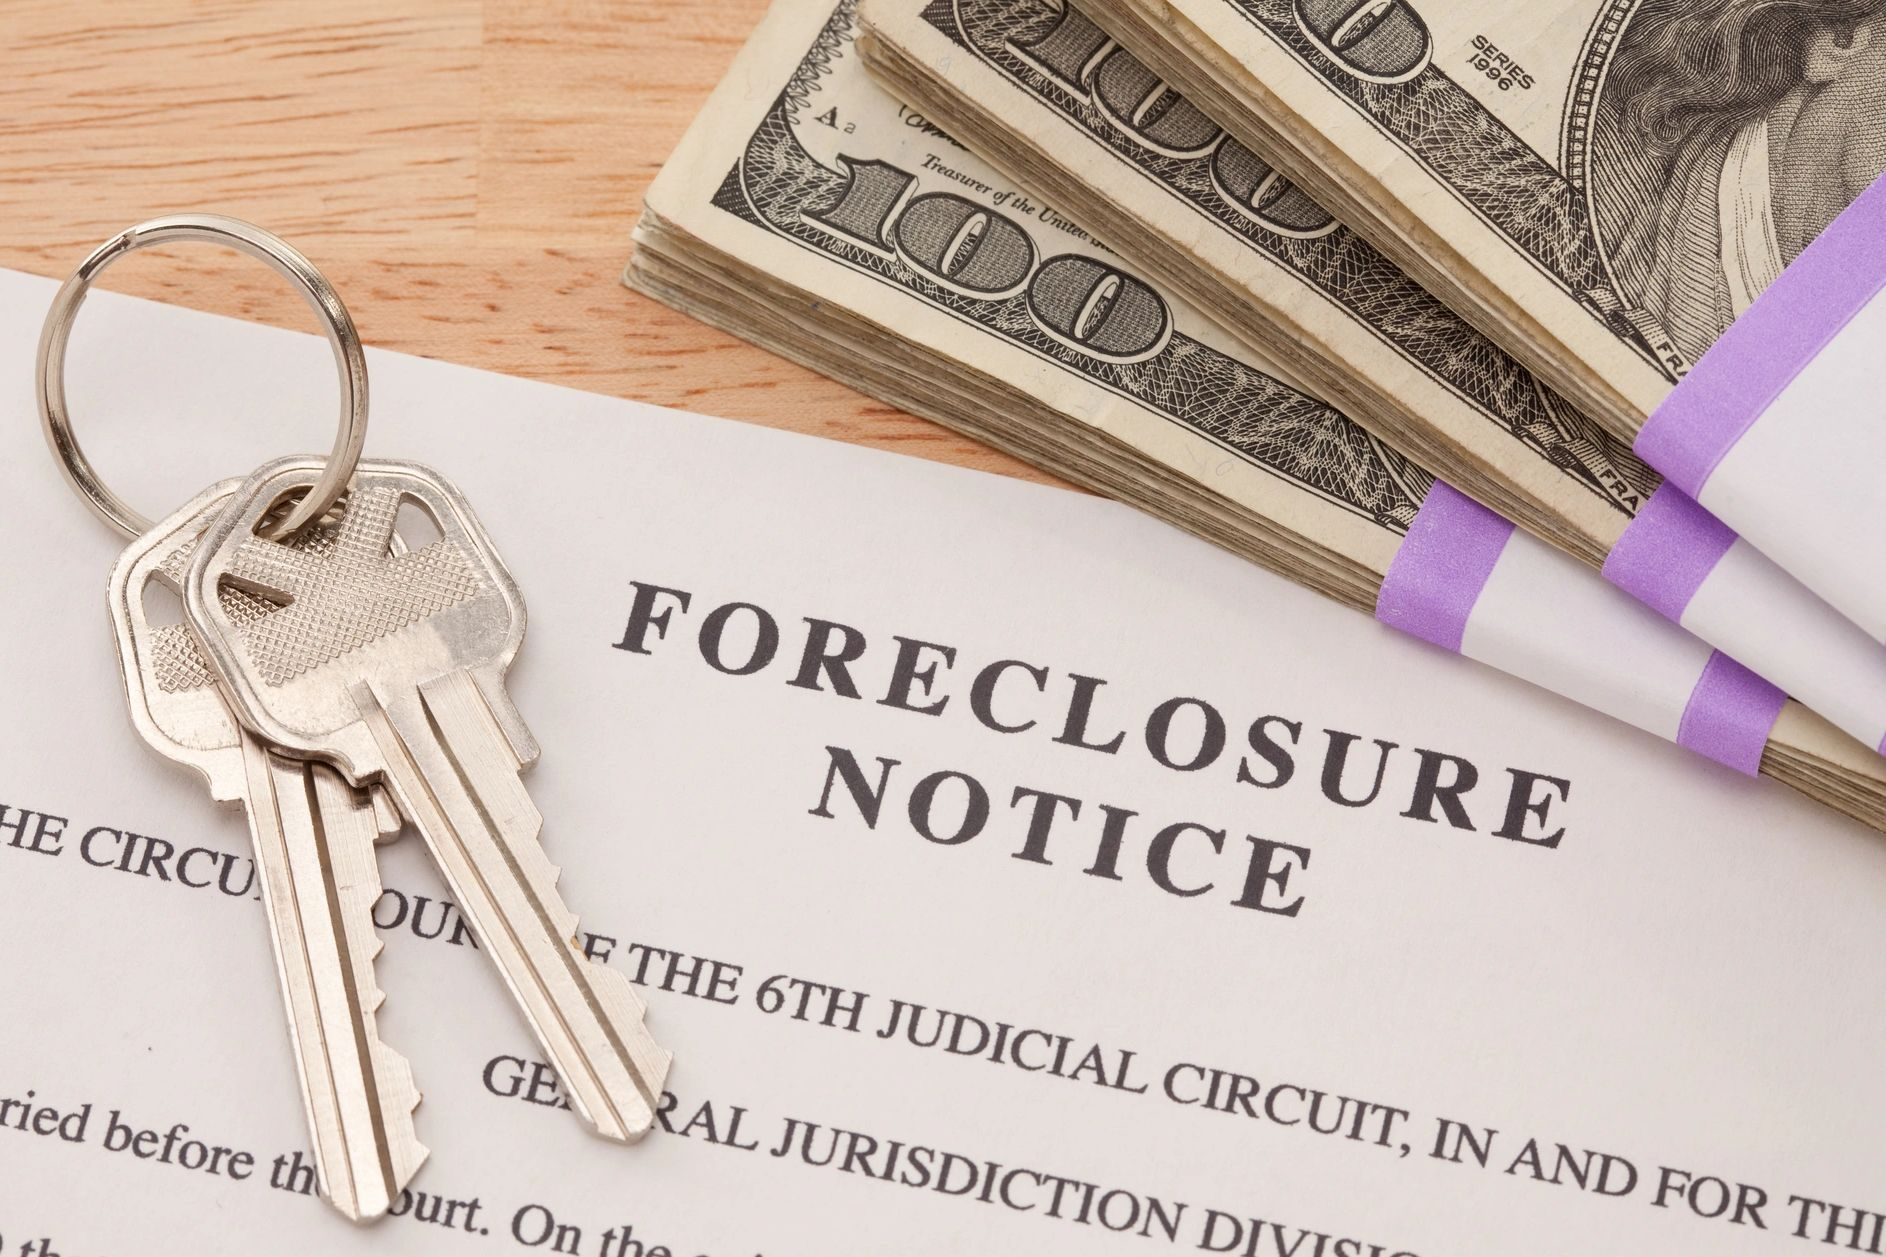 Foreclosure Notice for NJ Foreclosure Mediation